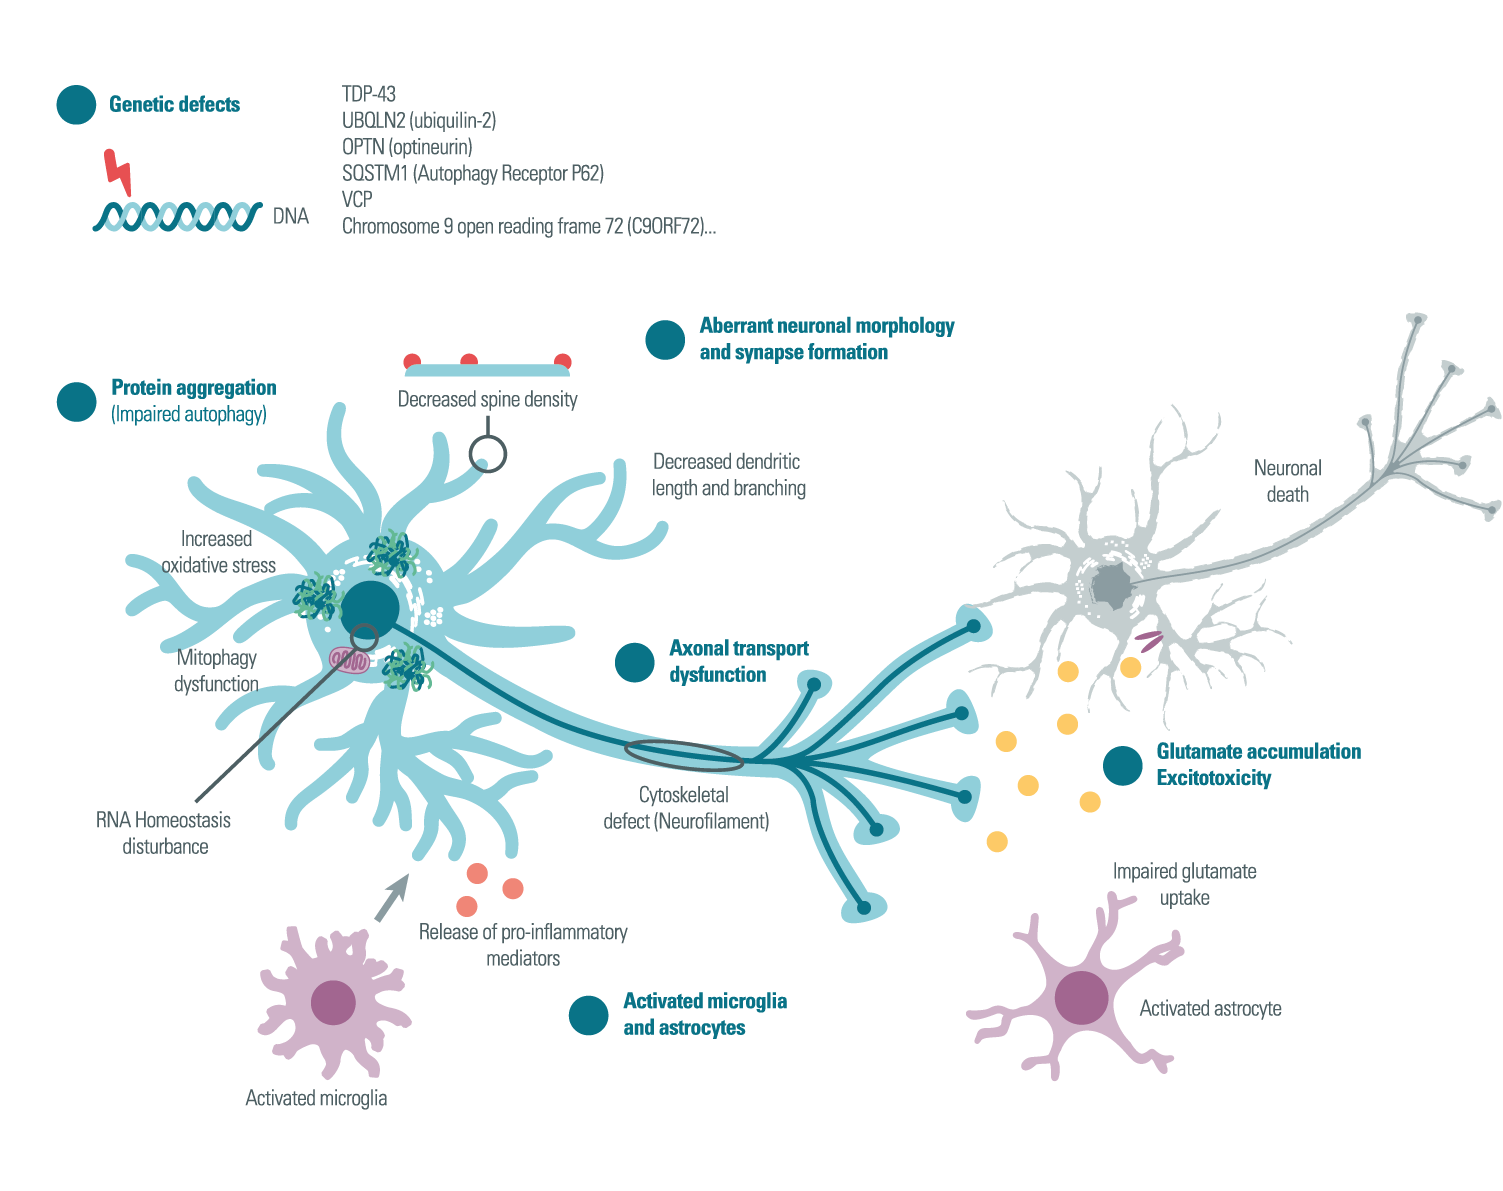 Pathogenesis of Alzheimer's Disease - amyotrophic lateral